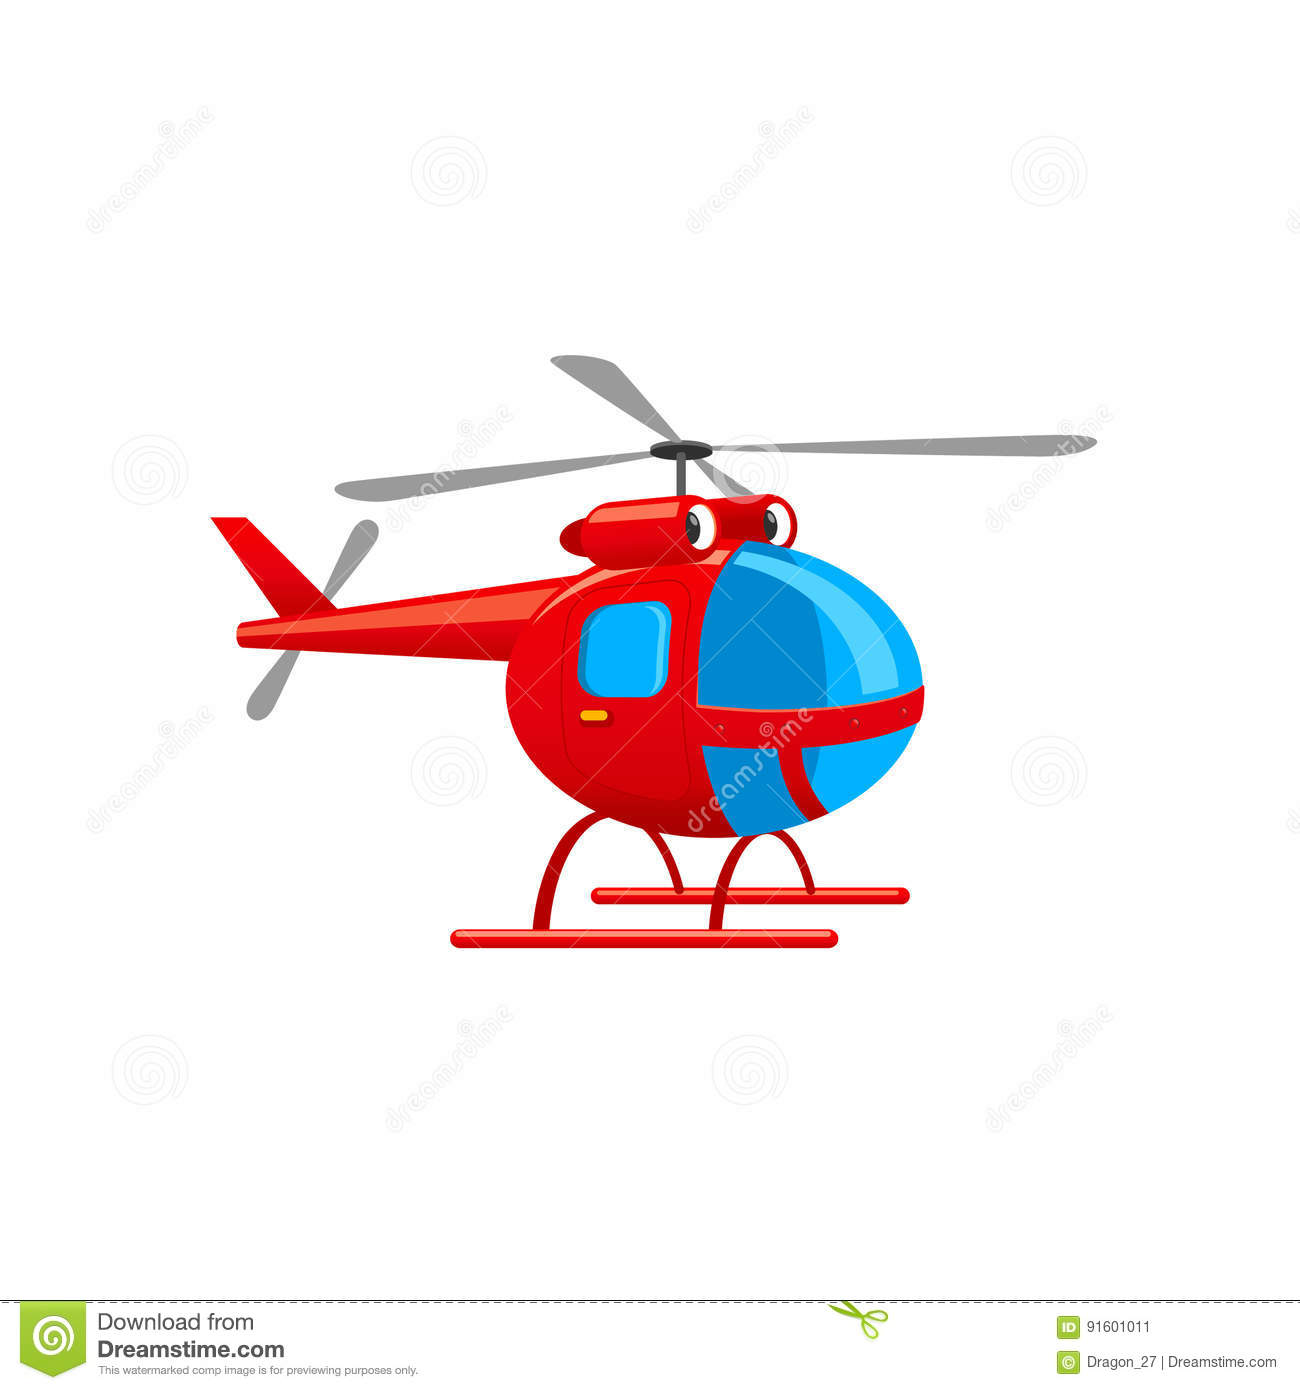 Helicopter Cute Stock Illustrations 3 780 Helicopter Cute Stock Illustrations Vectors Clipart Dreamstime